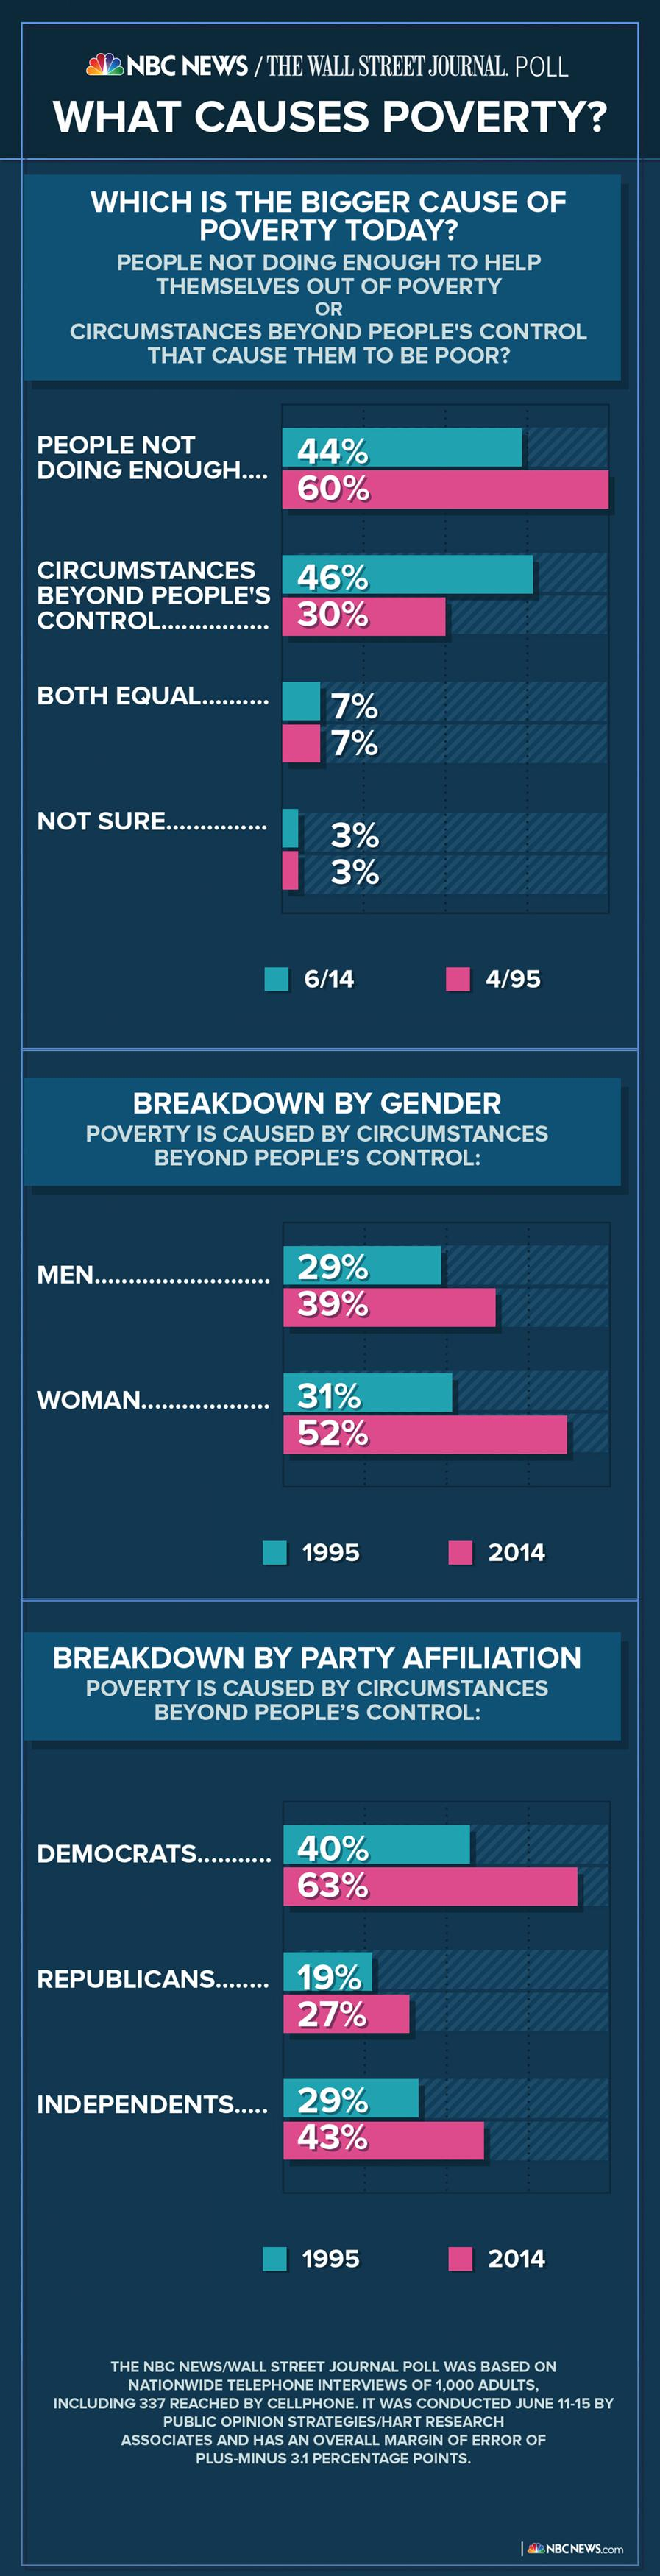 Image: An infographic shows the demographic breakdown of people in poverty